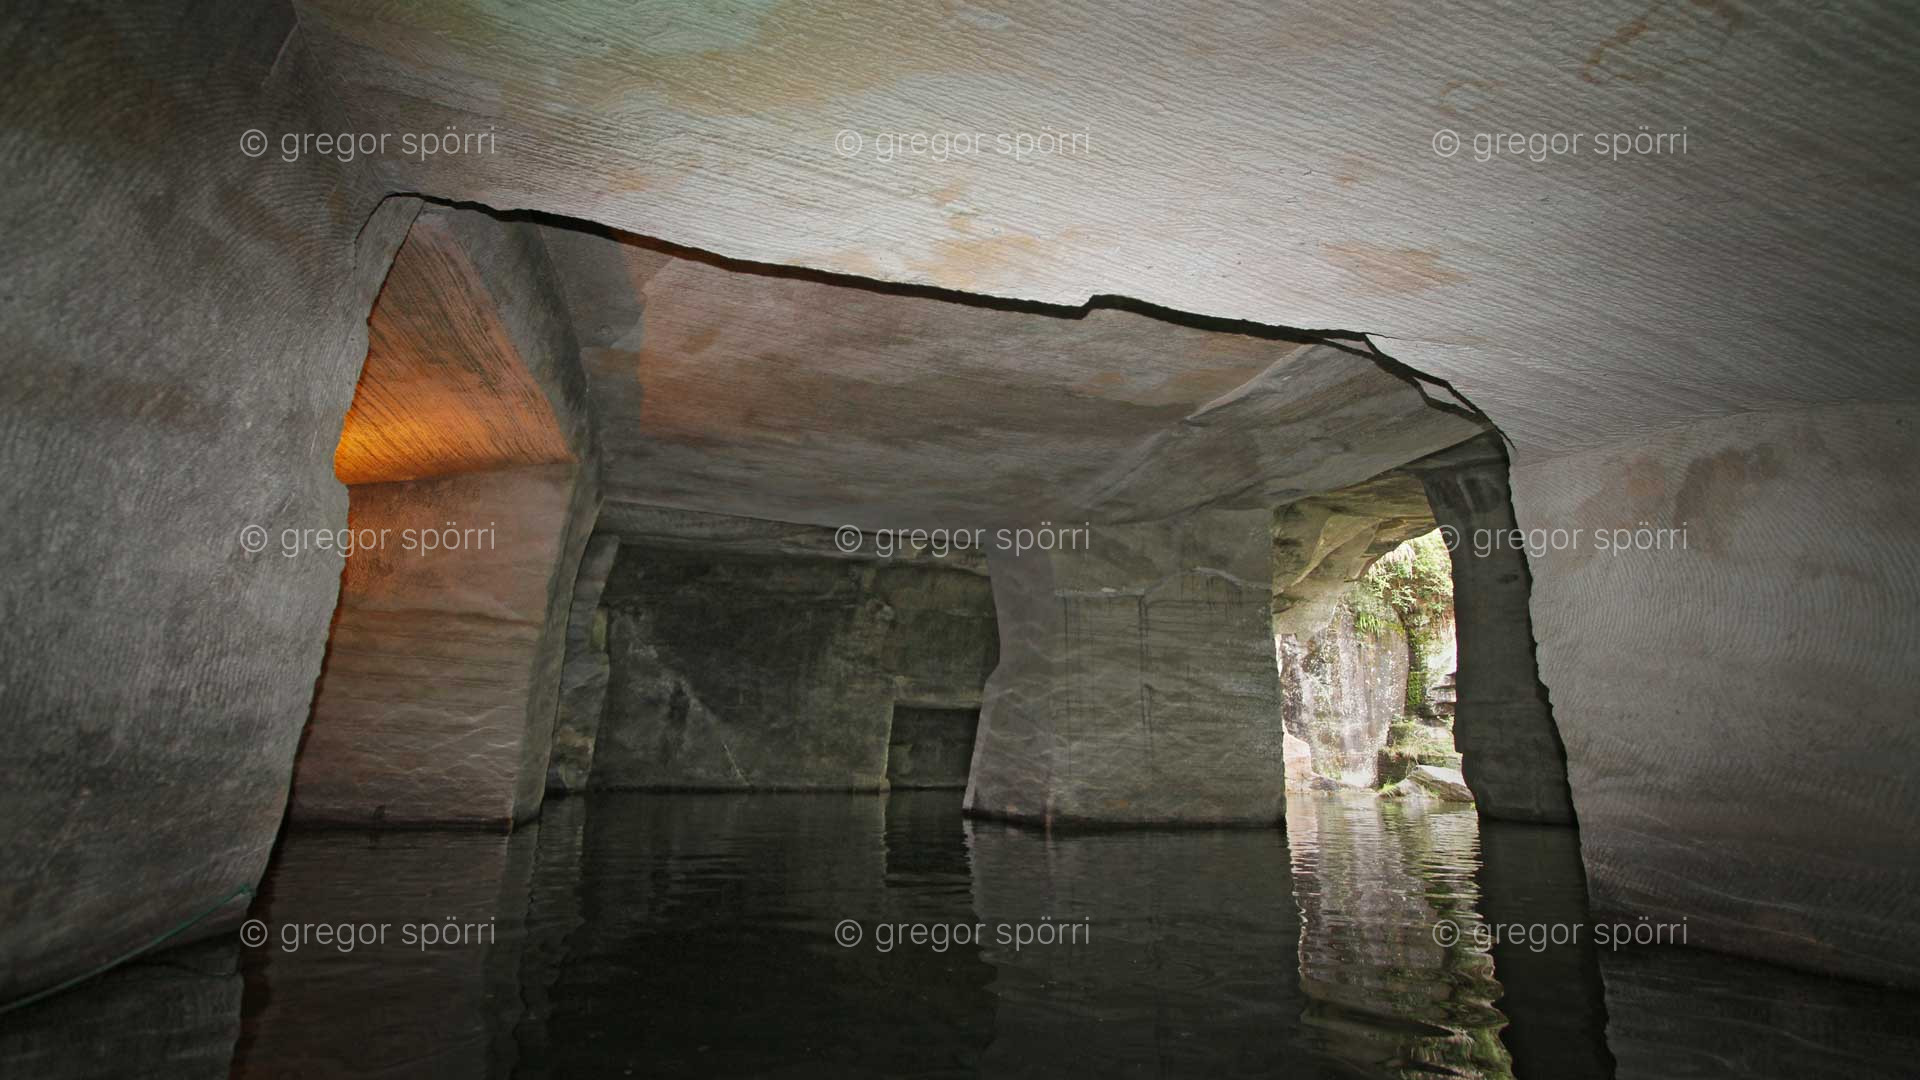 The China Grotto No 24 in Huang Shan (Blumenberg) is deep under water. Exploration is only possible in the front area.